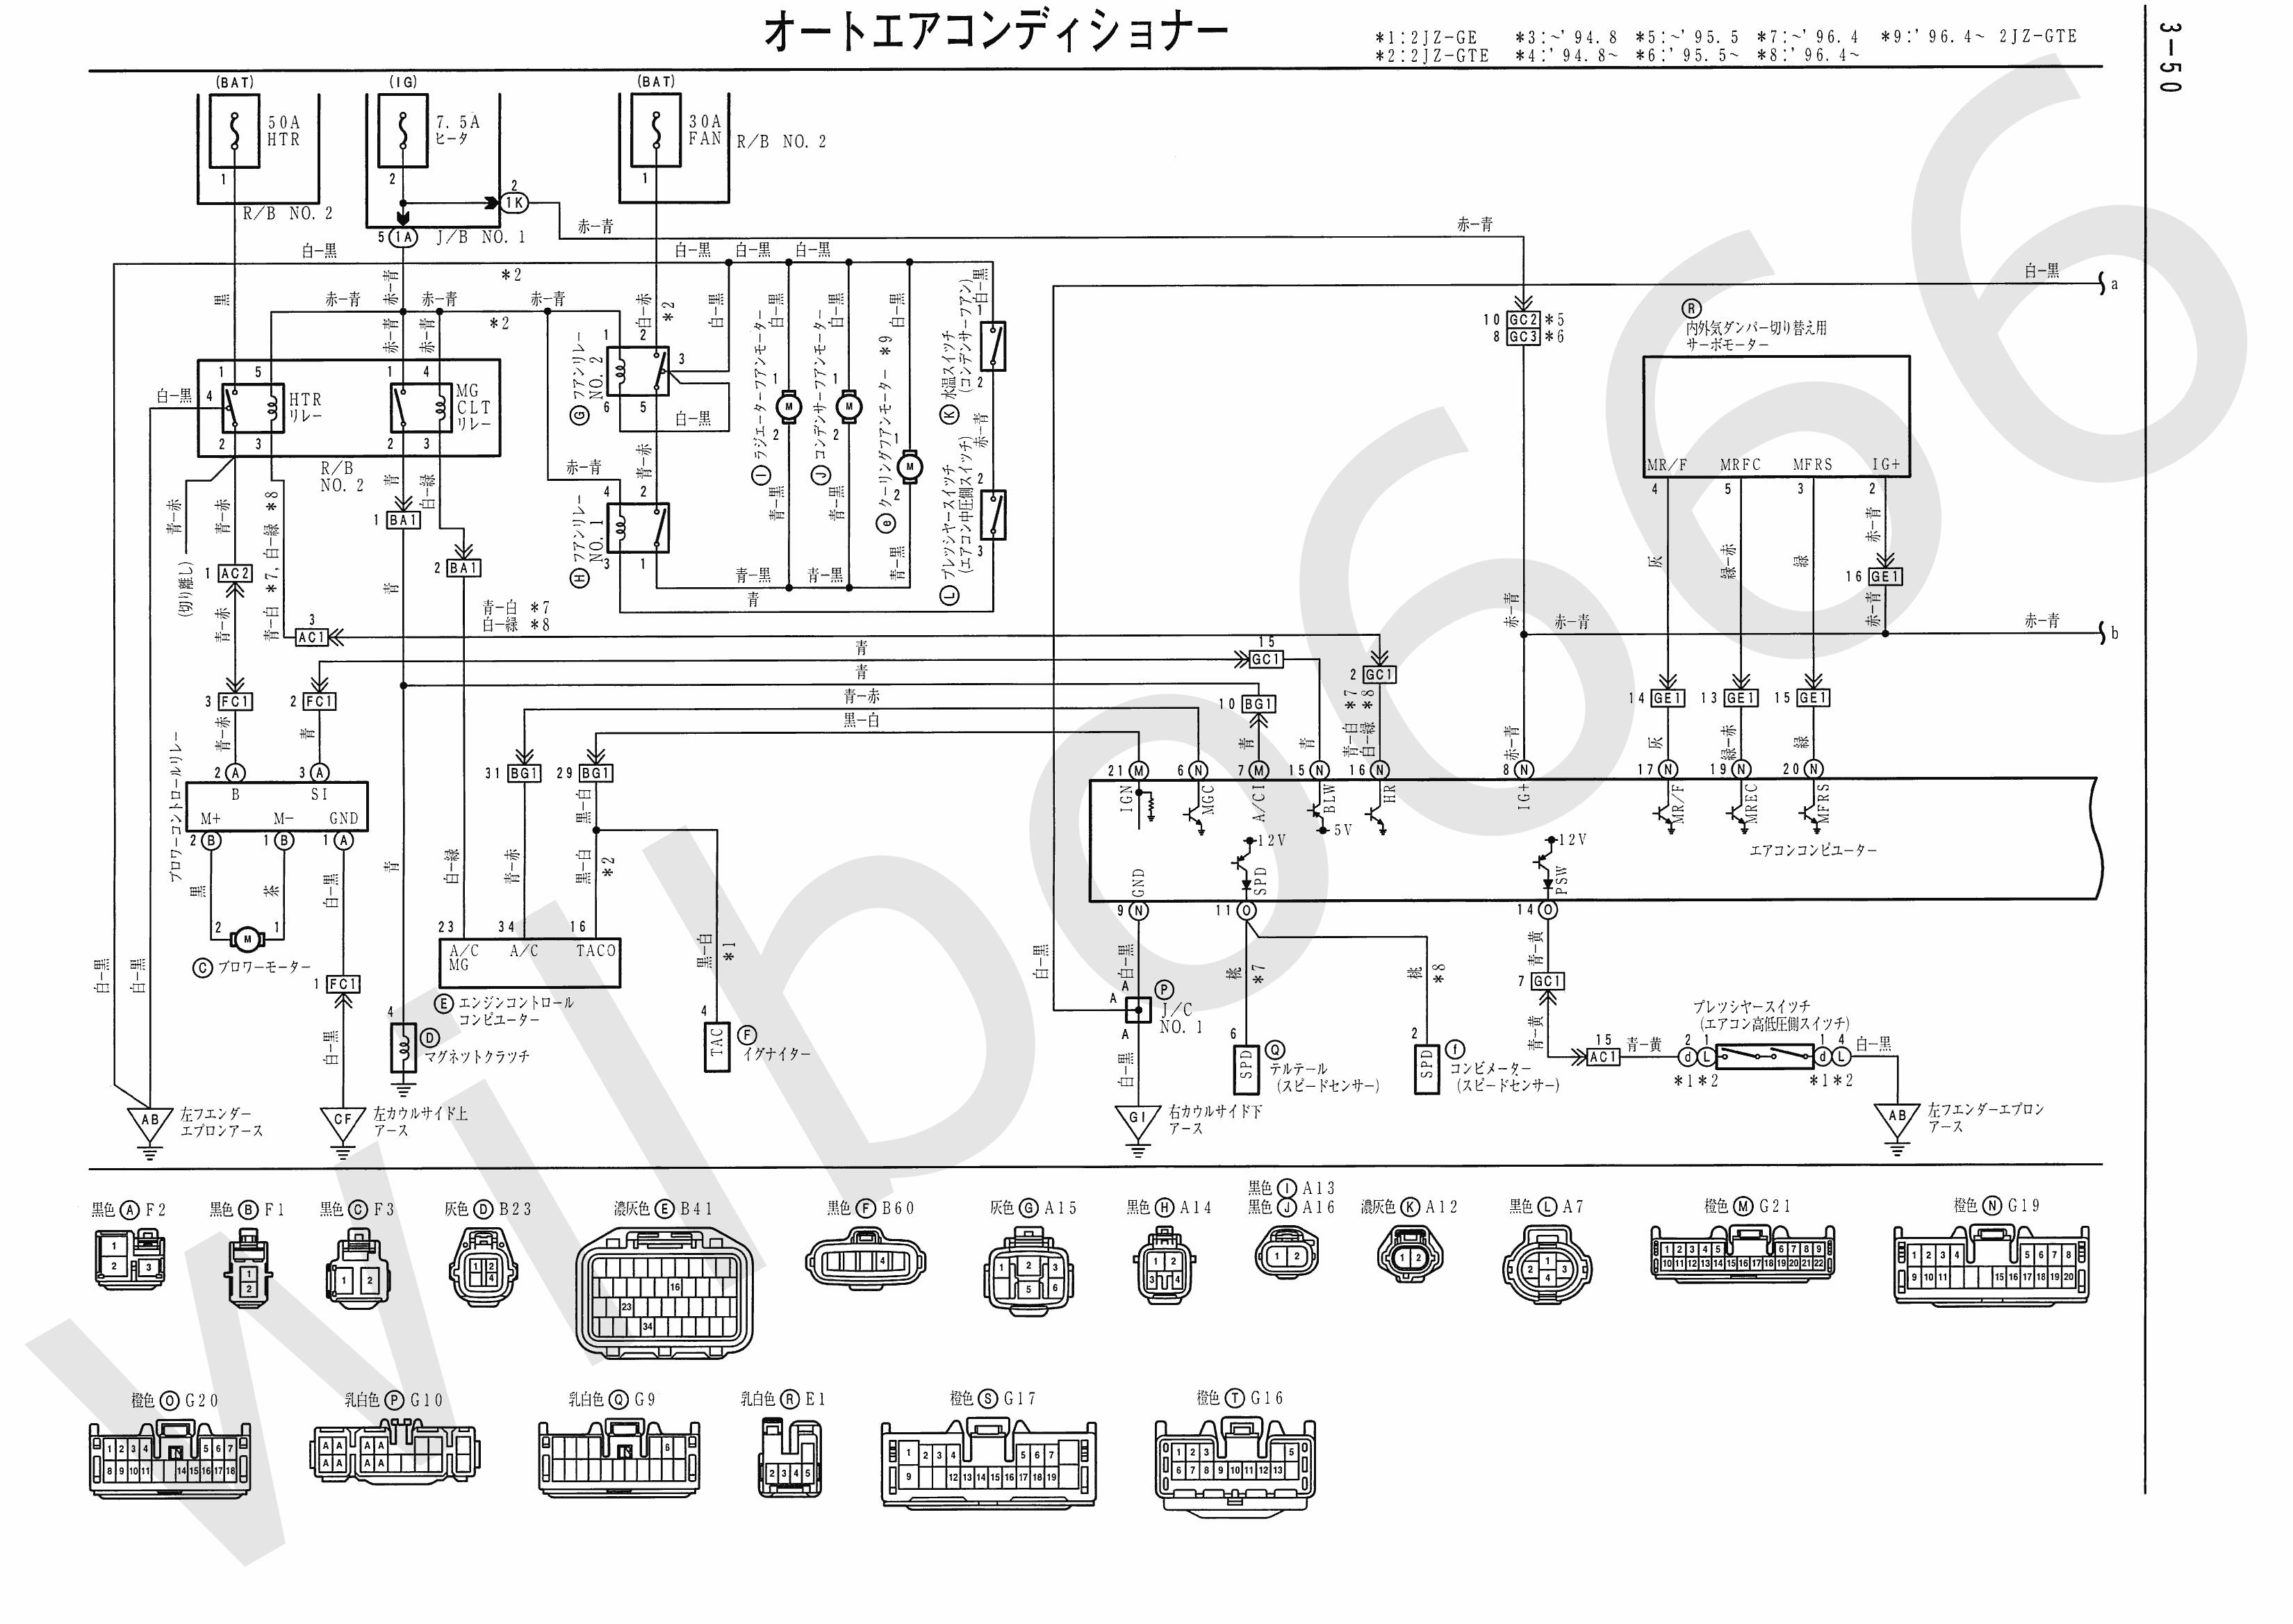 Wiring Diagram Motor Honda Supra : Supra engine diagram free image for user